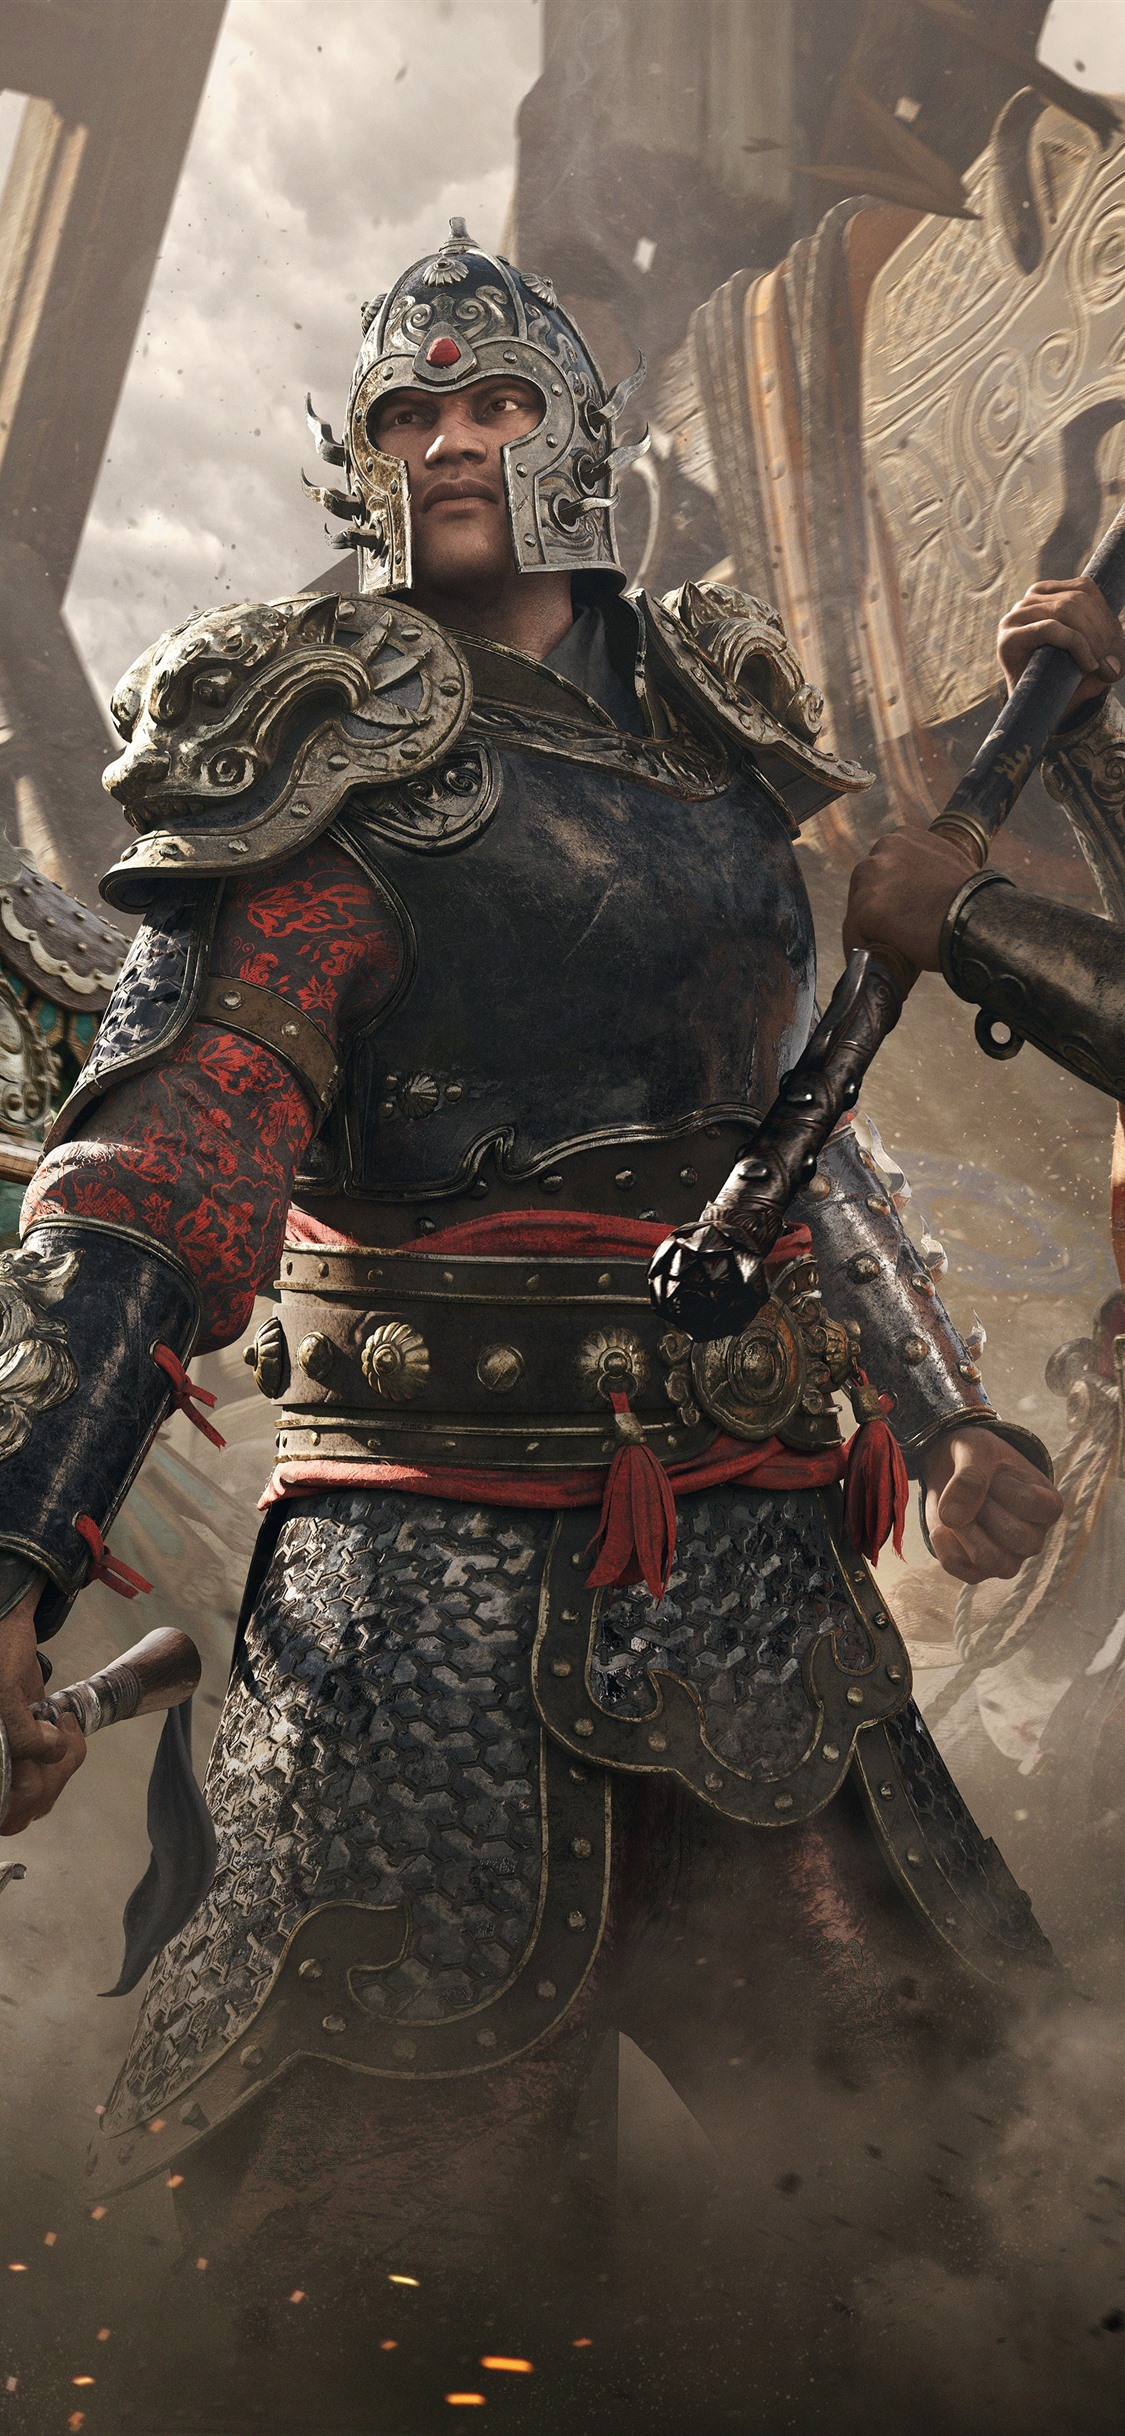 For Honor 2018 E3 1125x2436 Iphone 11 Pro Xs X Wallpaper Background Picture Image